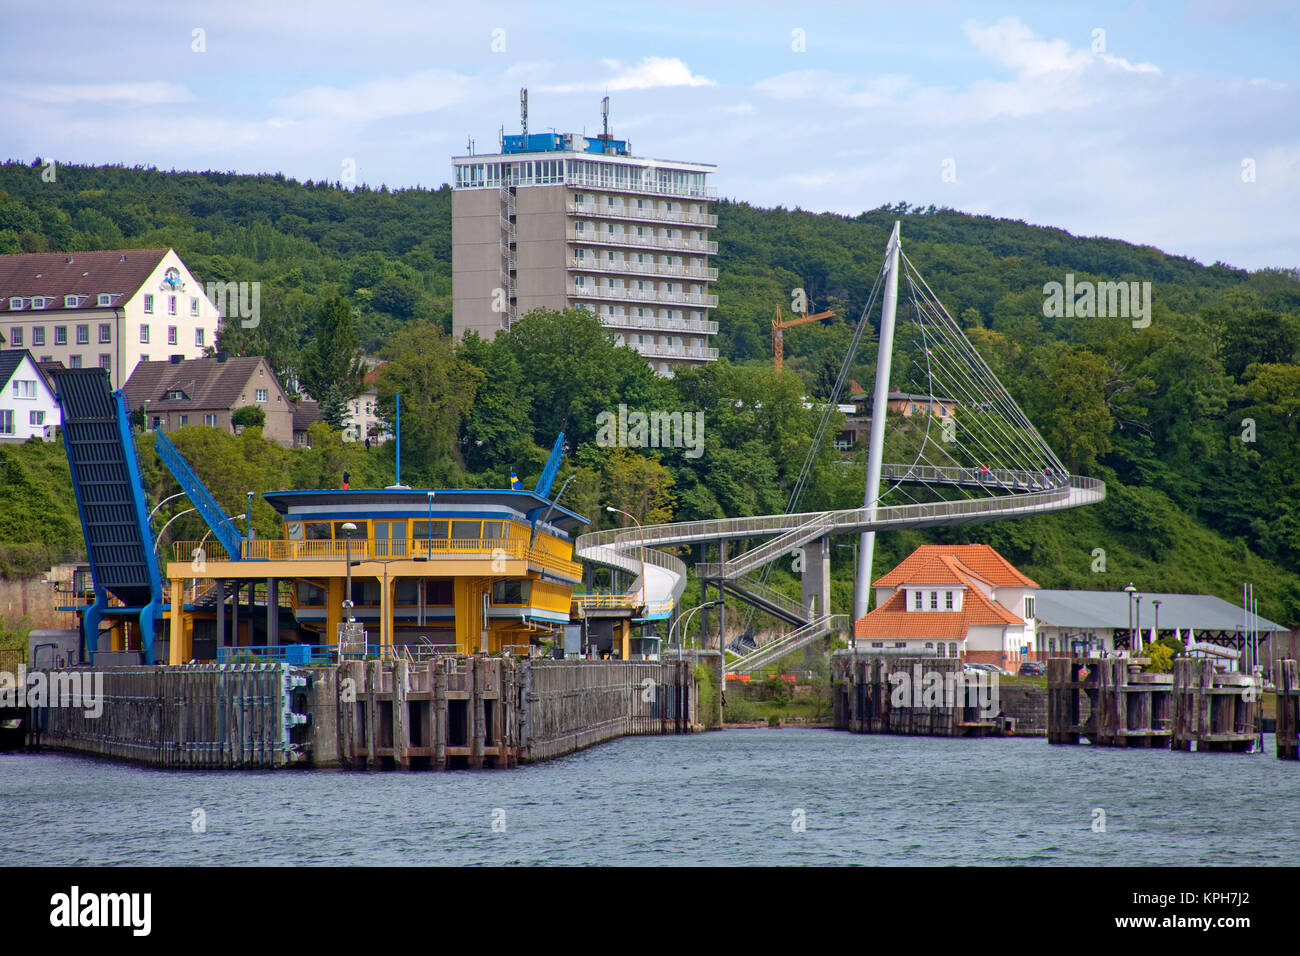 Hotel Ruegen and pedestrian bridge, connect city with harbour, Sassnitz, Ruegen island, Mecklenburg-Western Pomerania, Stock Photo